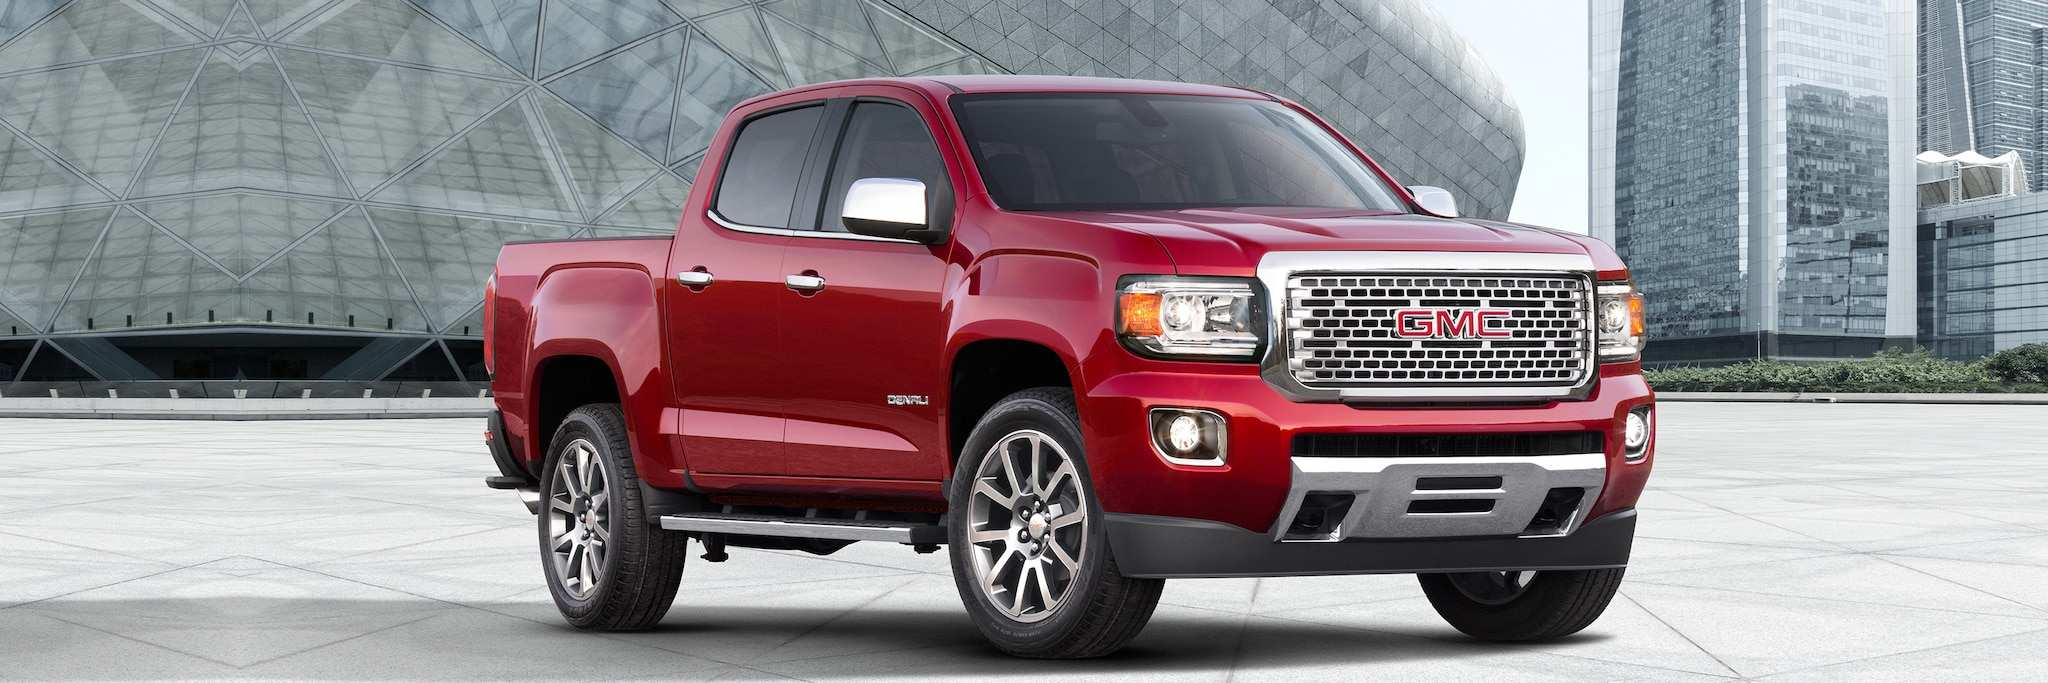 52 All New 2019 Gmc Canyon Denali Release for 2019 Gmc Canyon Denali